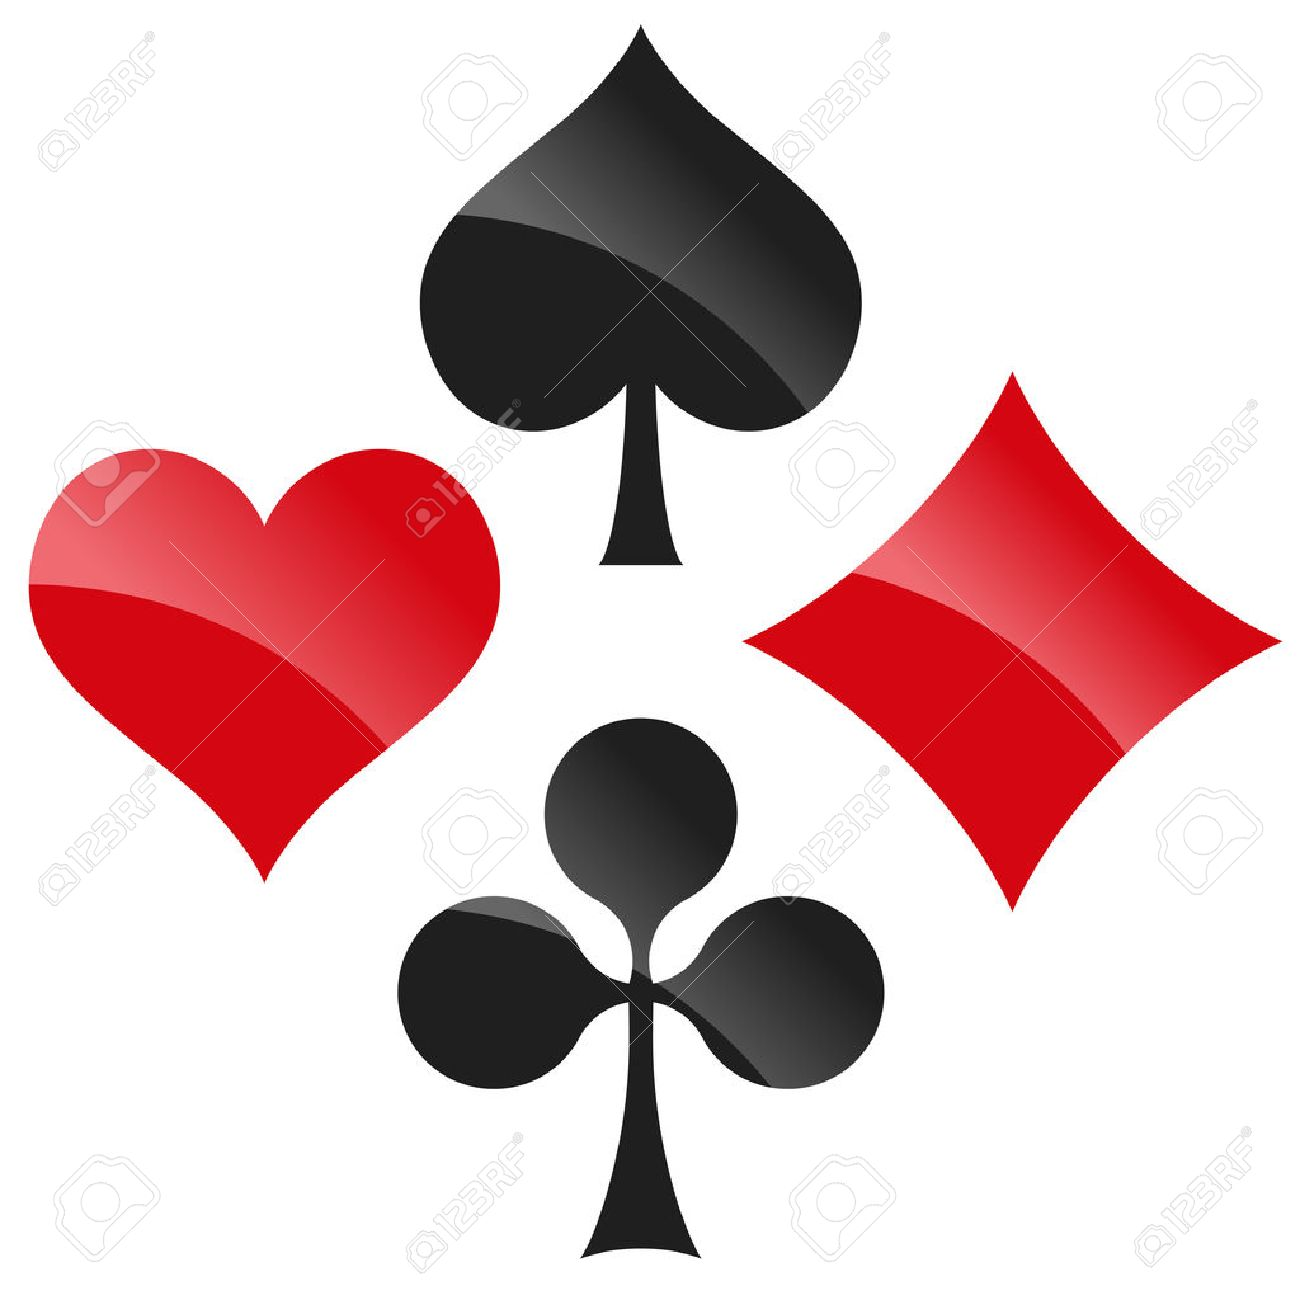 French playing cards symbols hearts tiles clovers and pikes french playing cards symbols hearts tiles clovers and pikes with reflection stock vector biocorpaavc